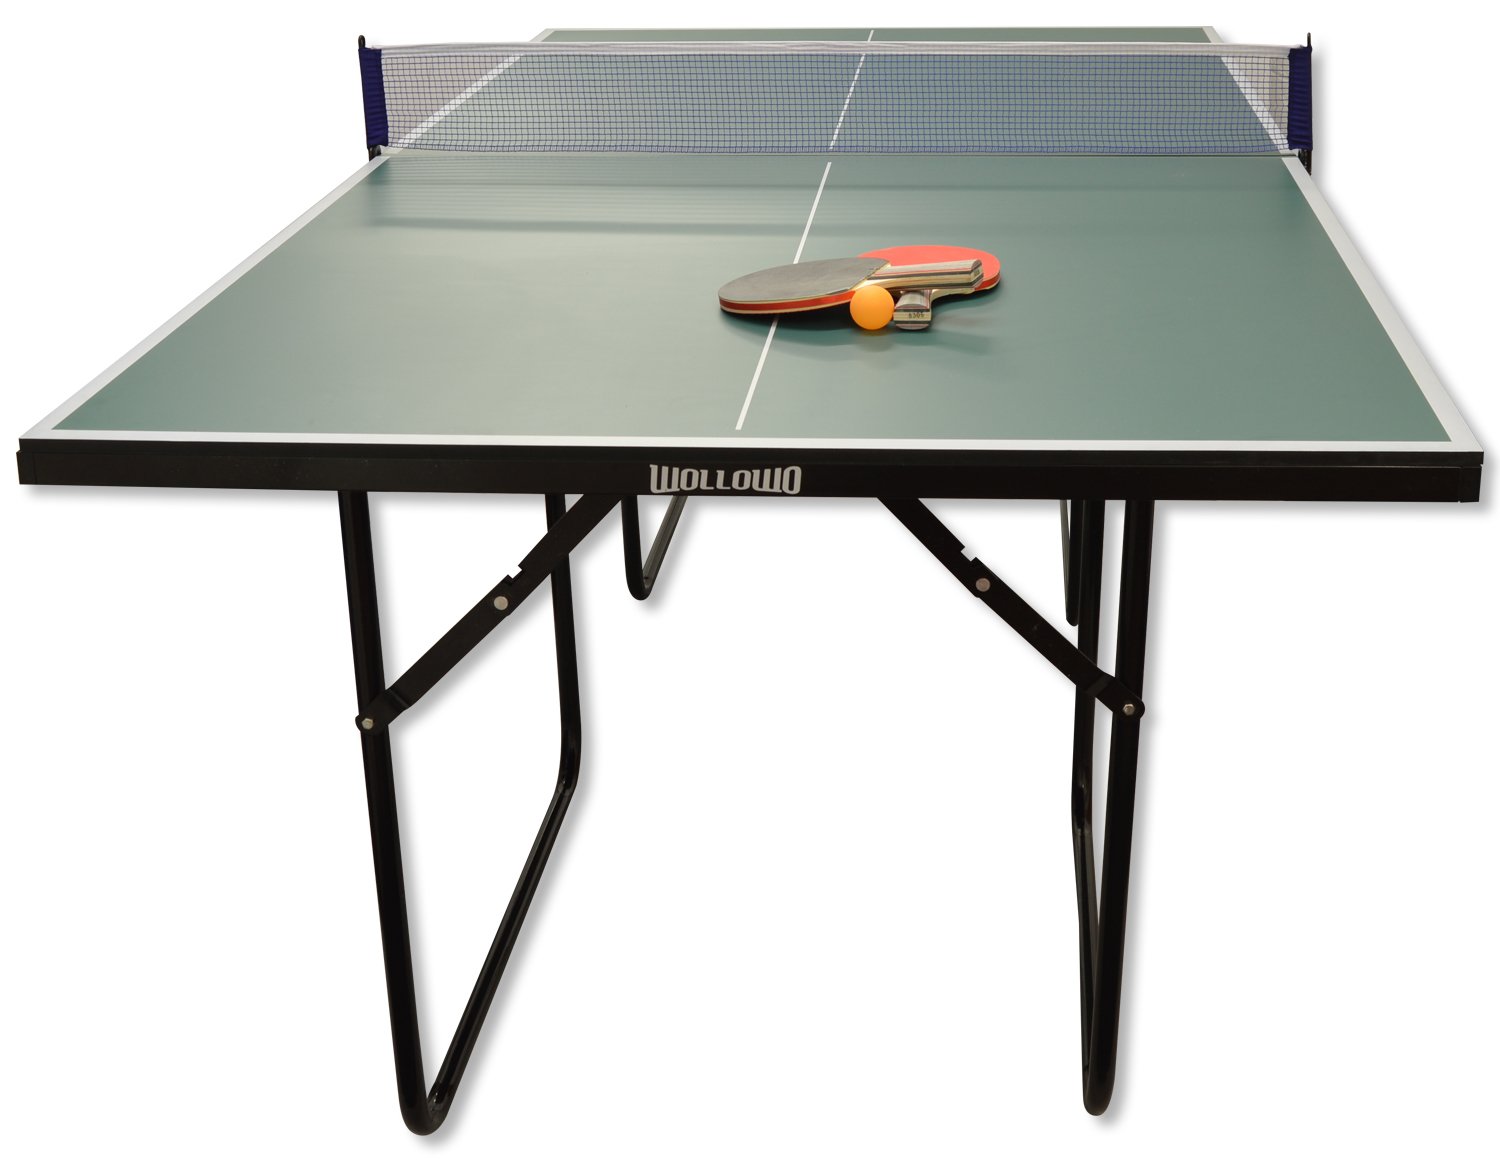 Green 3 4 Junior Sized Table Tennis Ping Pong Foldable